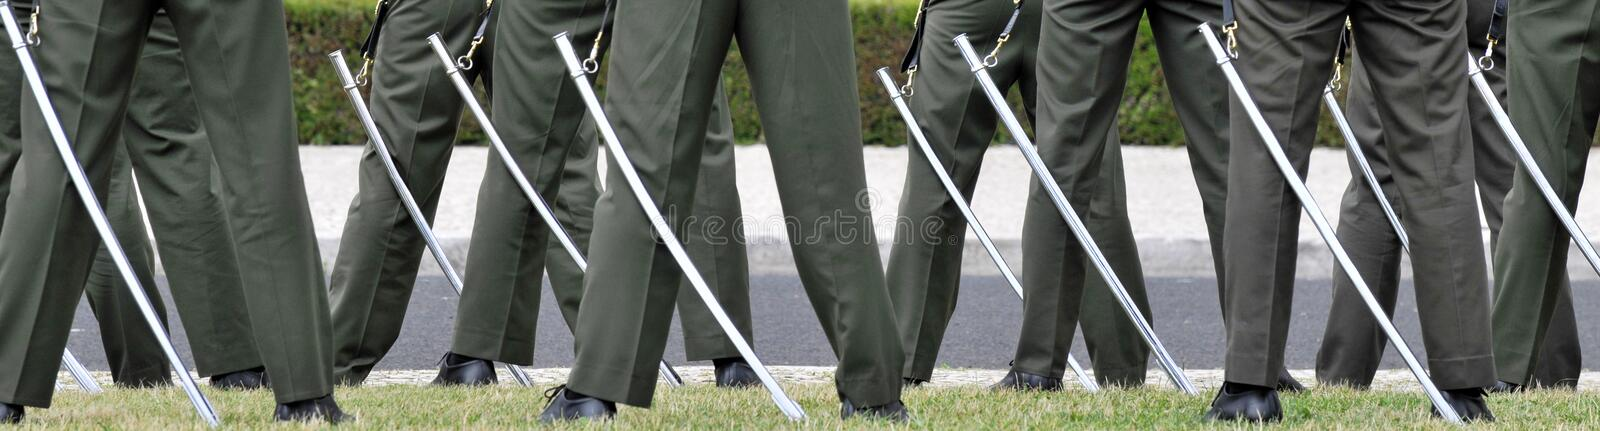 Download Ceremonial guards stock photo. Image of historical, green - 15269870